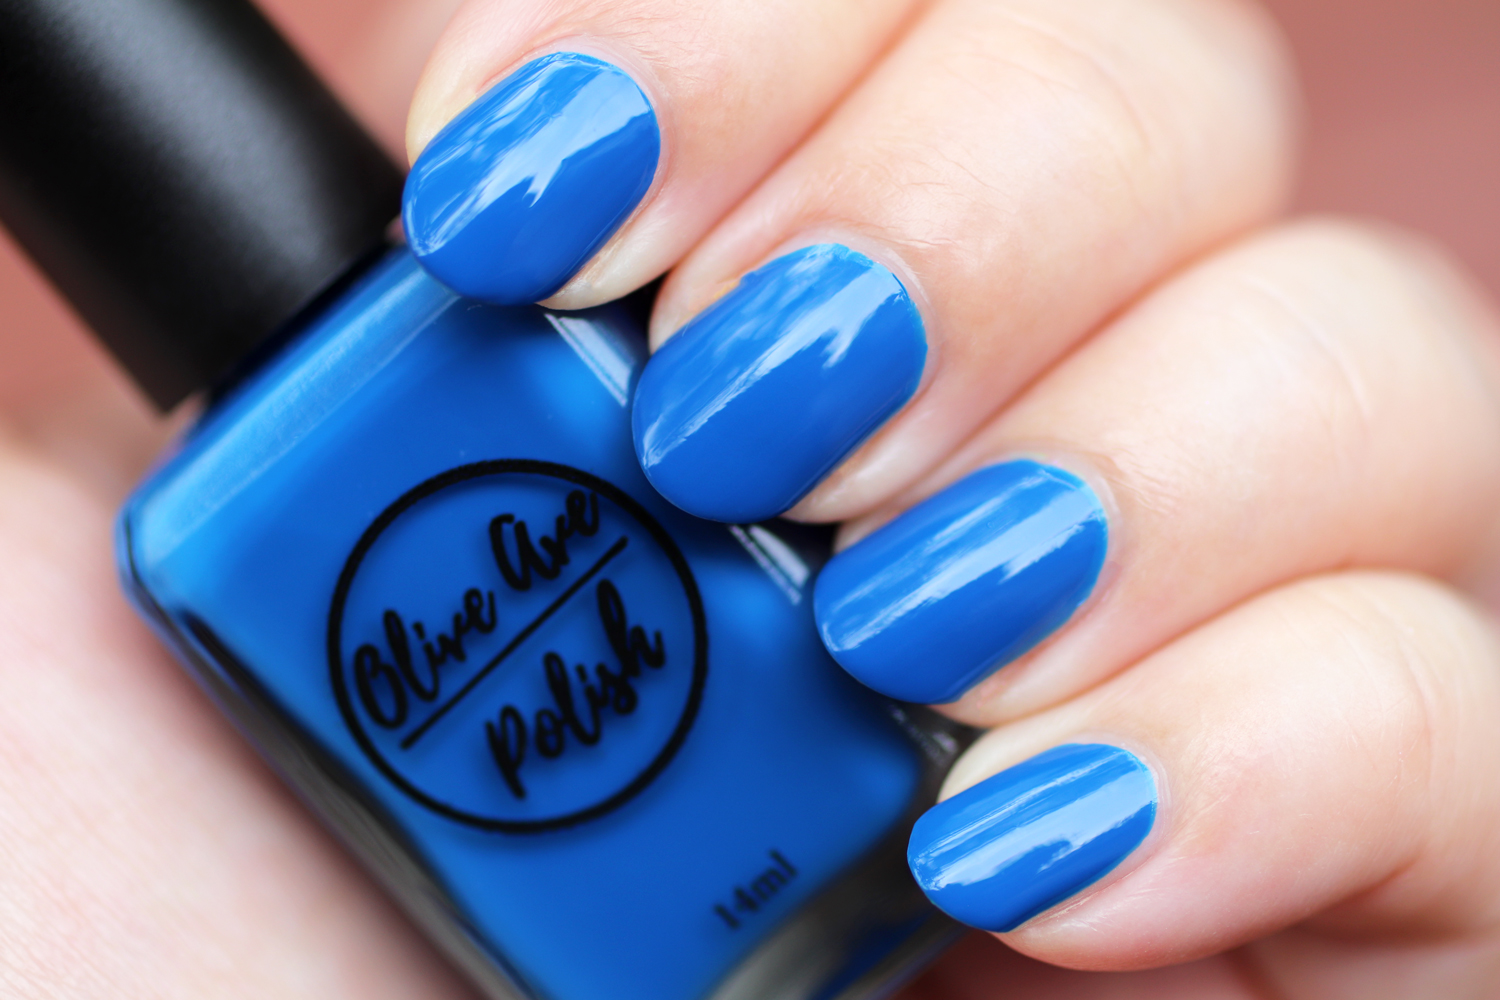 Roo cream blue nail polish by Olive Ave